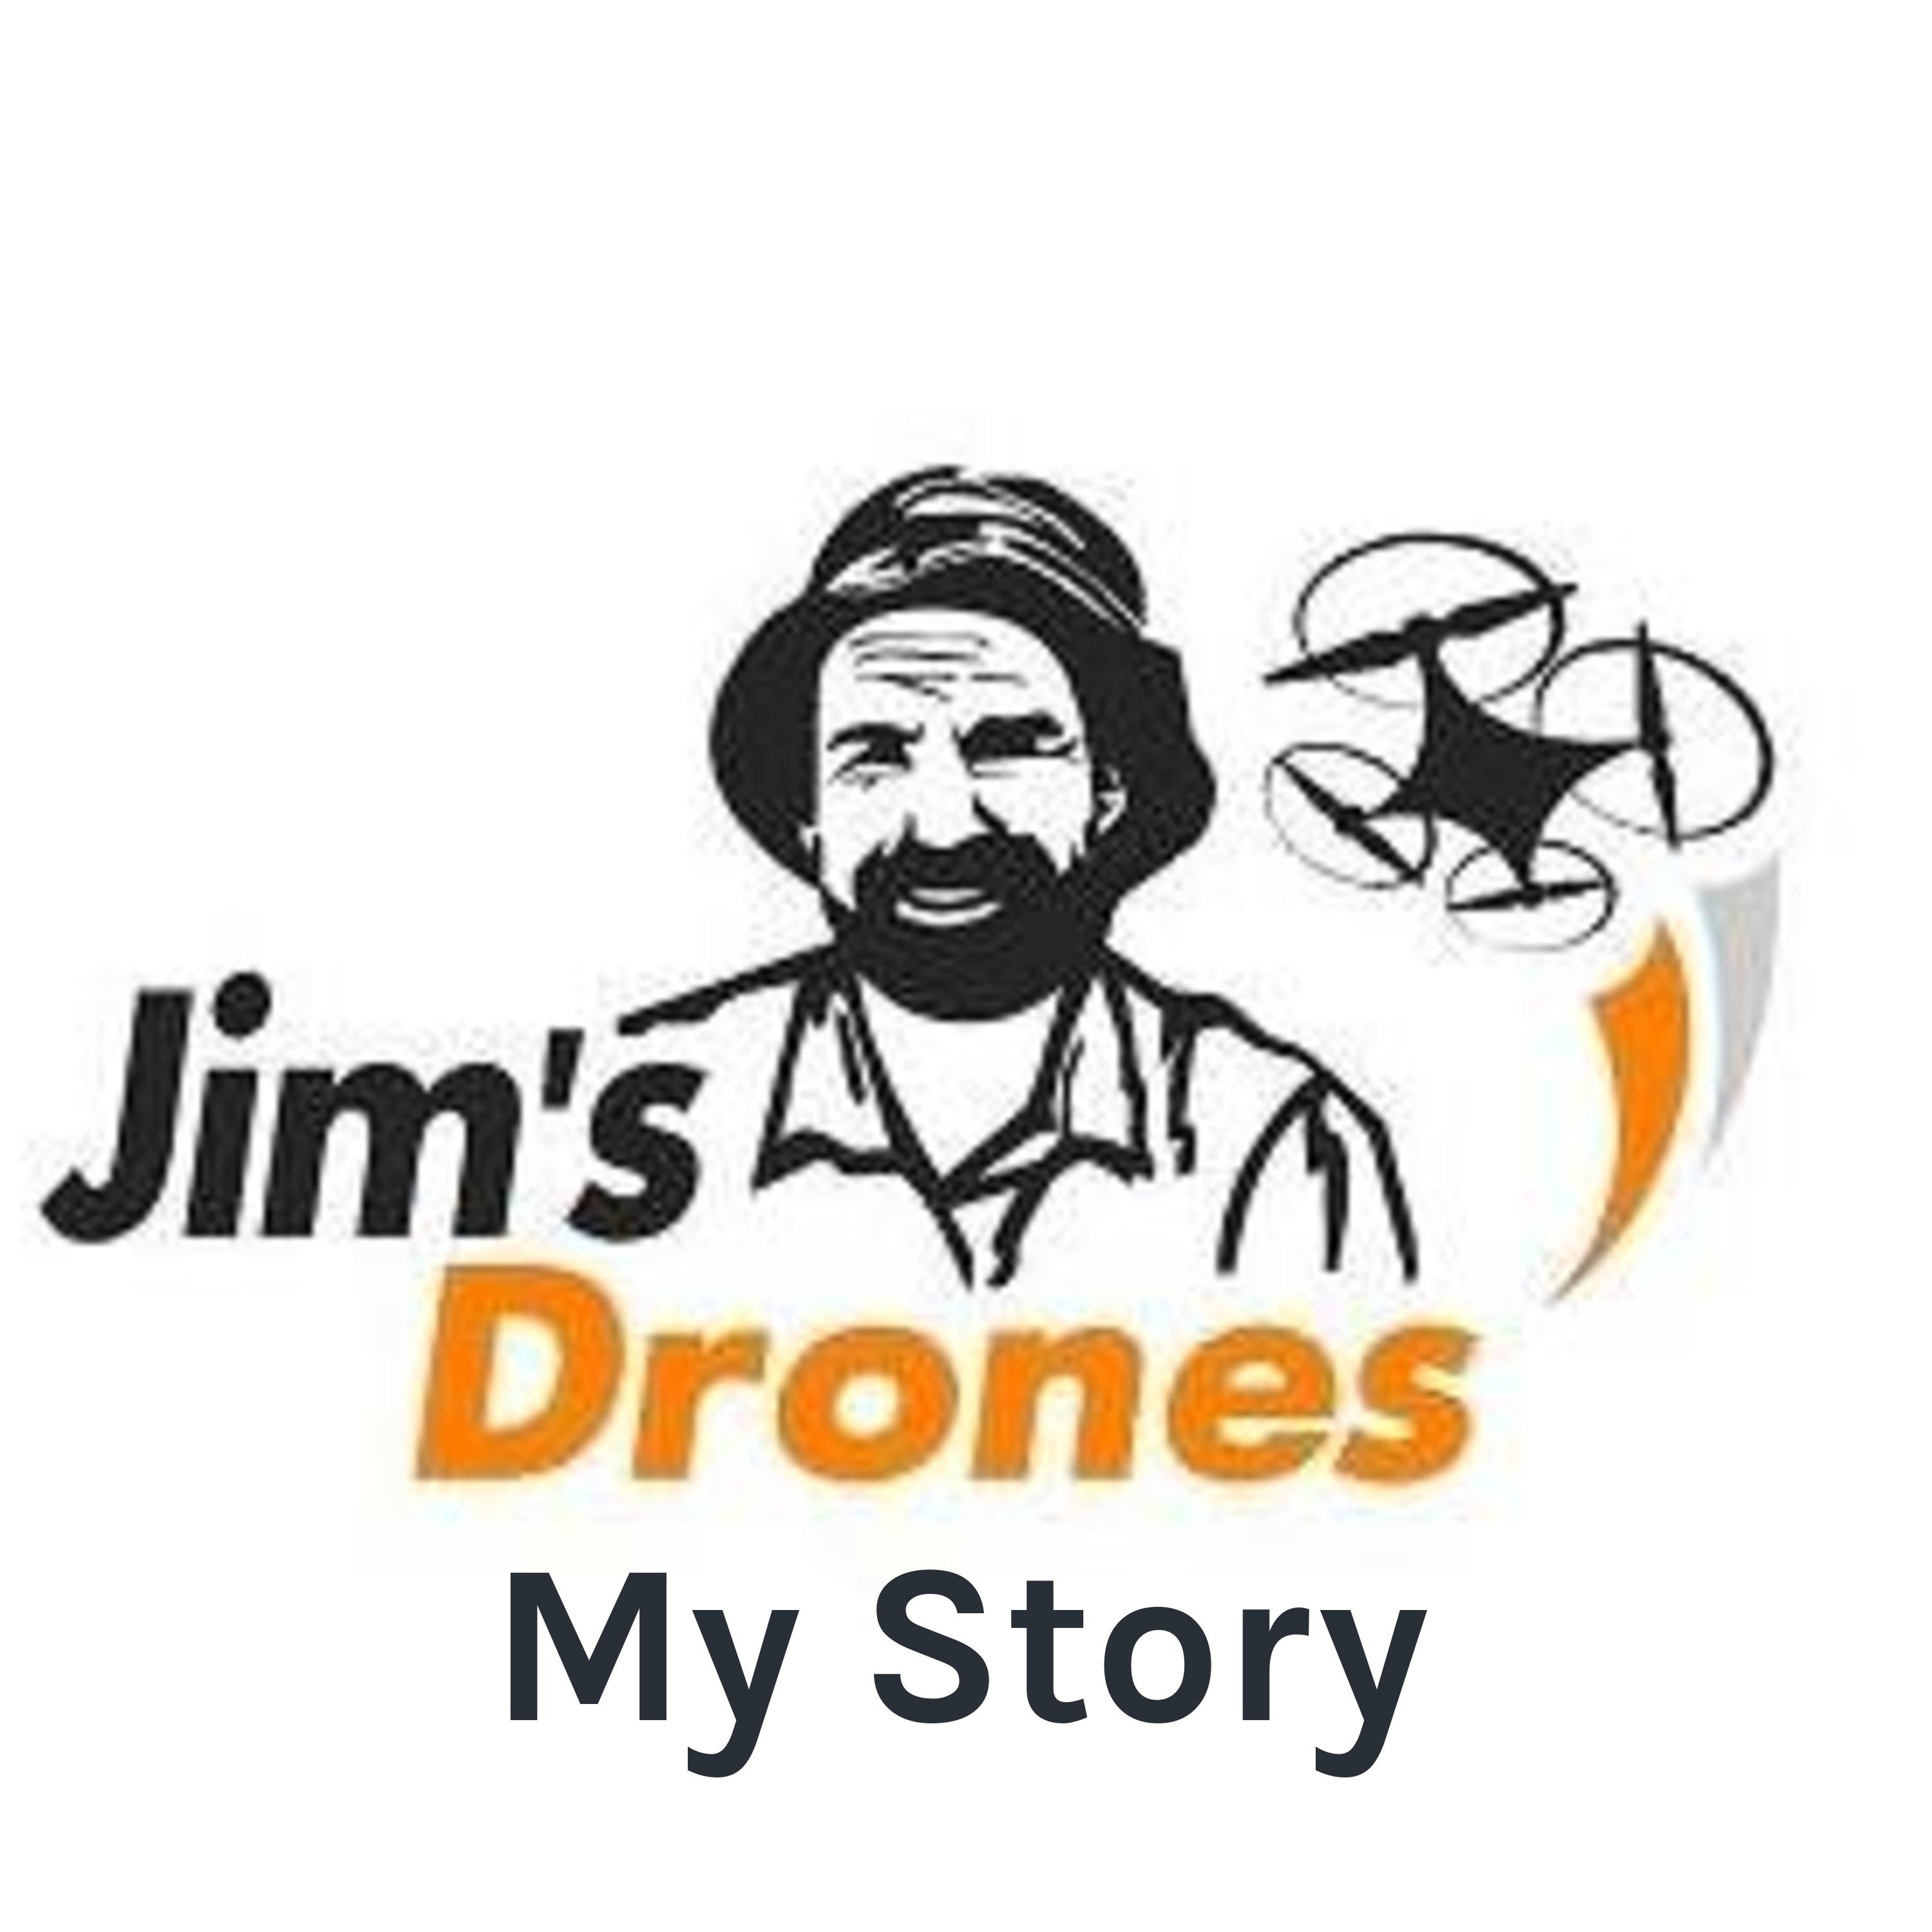 How 1 farm cut back water use by 80% thanks to drones and increased yield.